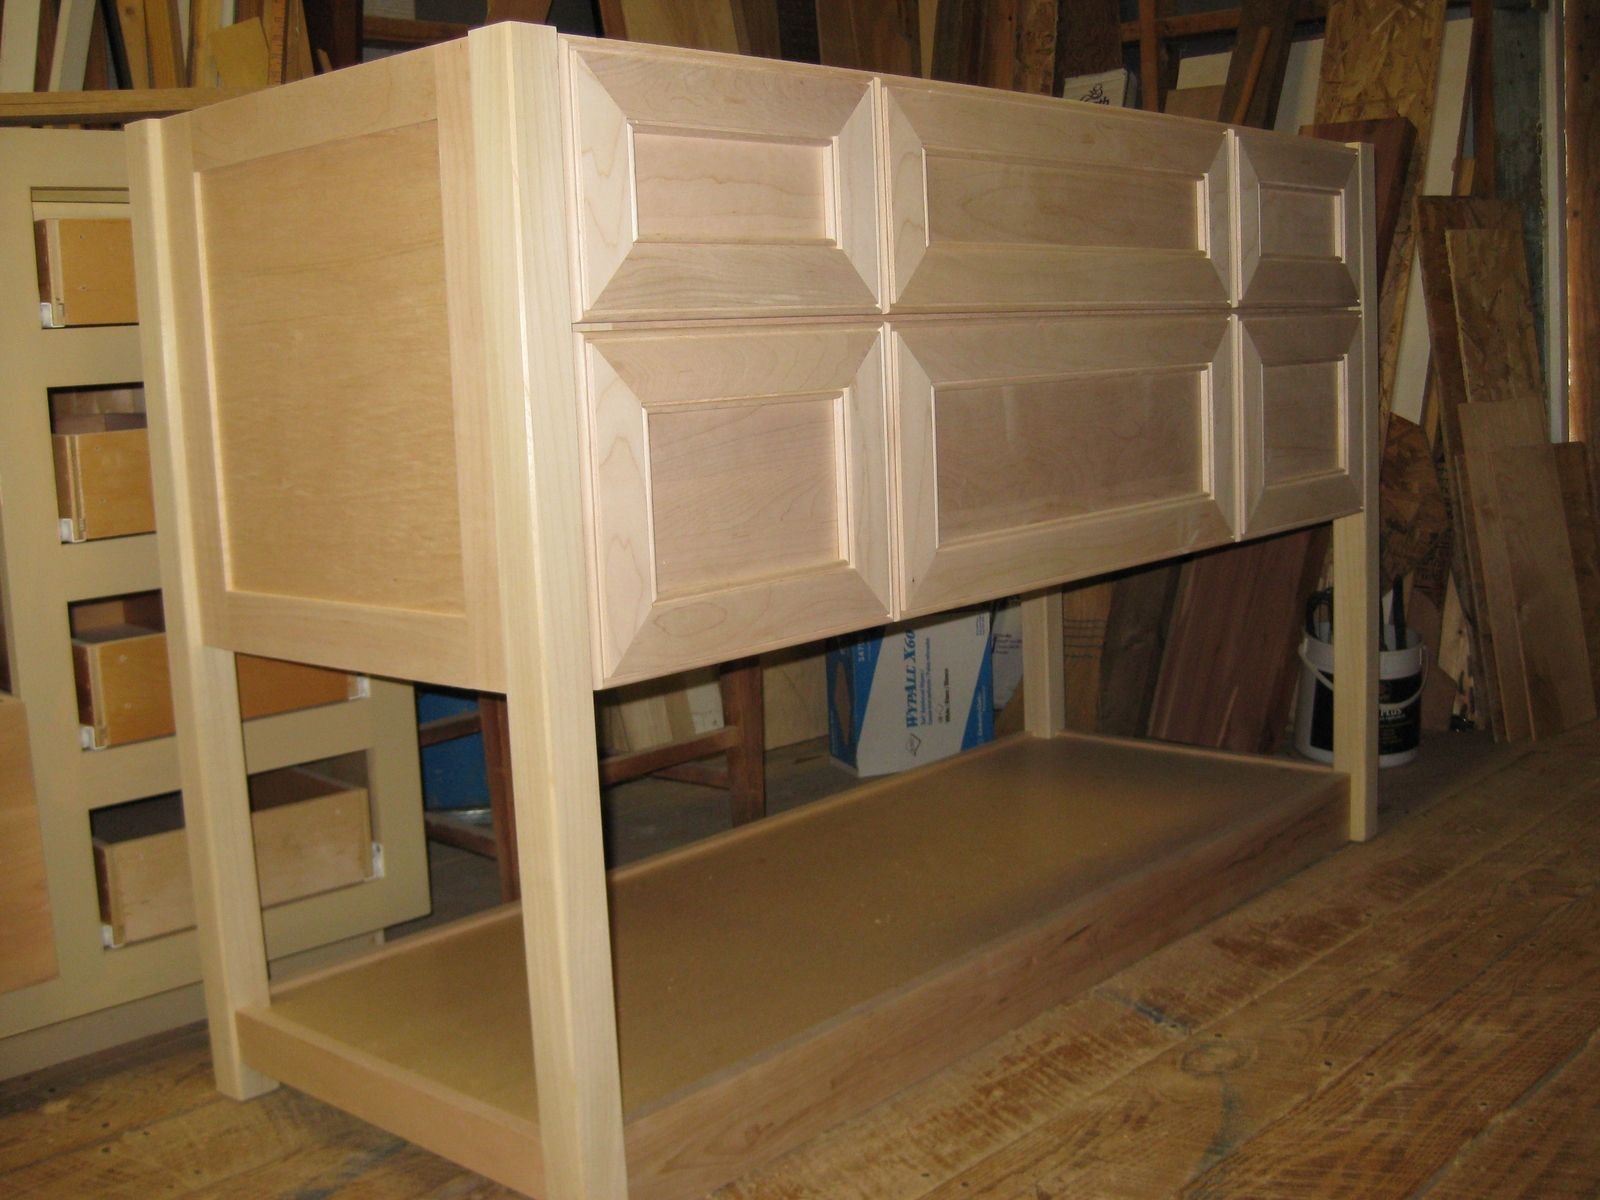 Unfinished Discount Kitchen Cabinets | Appealing Unfinished Discount Kitchen Cabinets Kitchen Cabinet